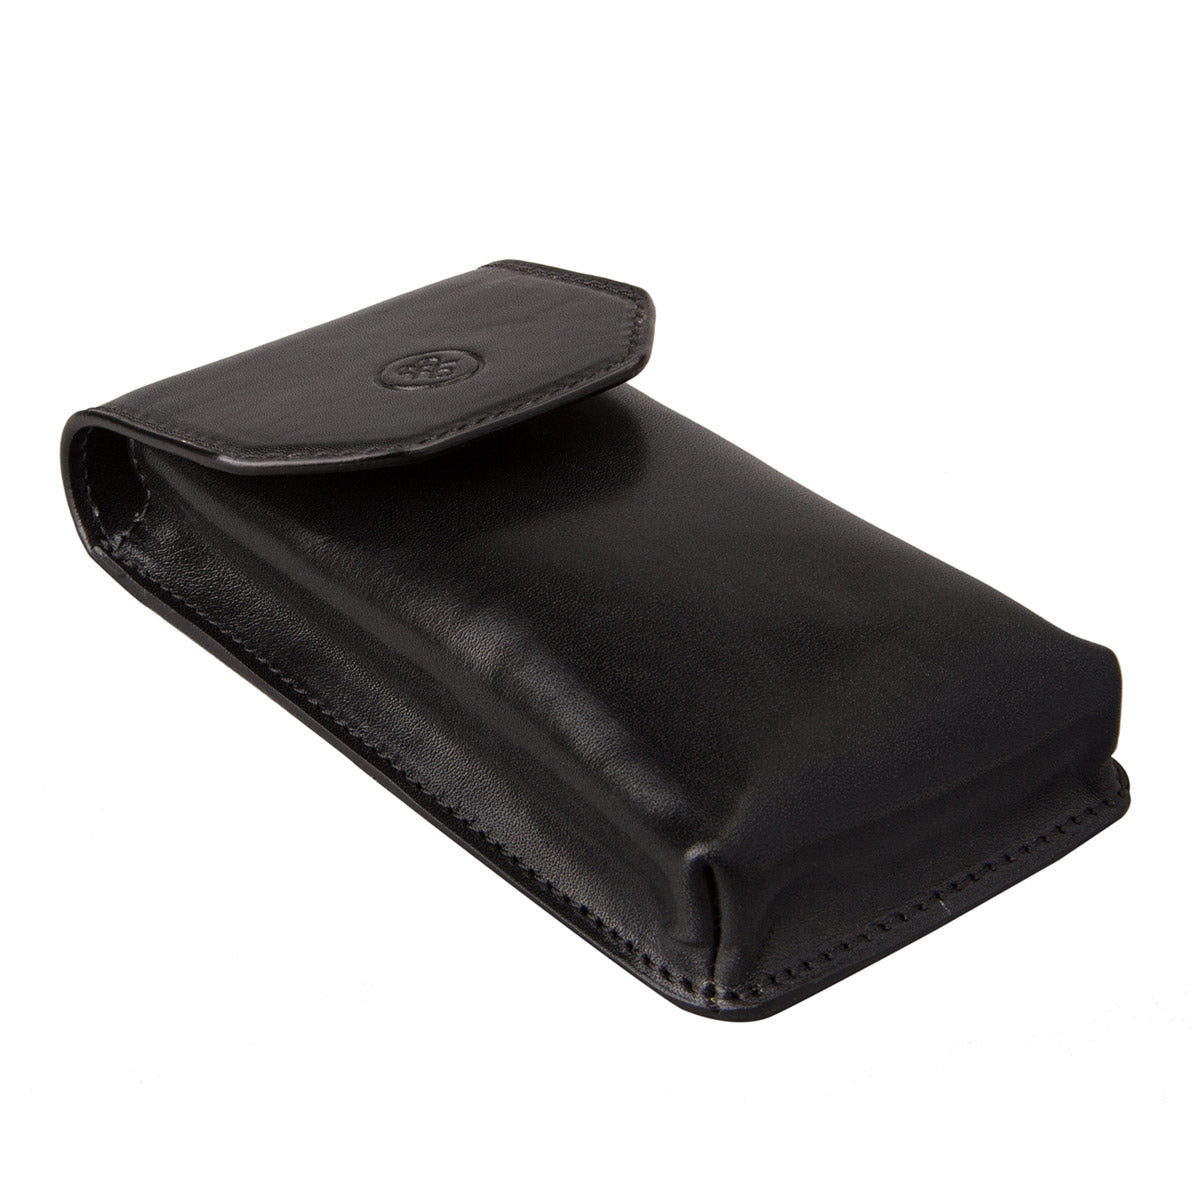 Image 2 of the 'Gabbro' Black Veg-Tanned Leather Glasses Case